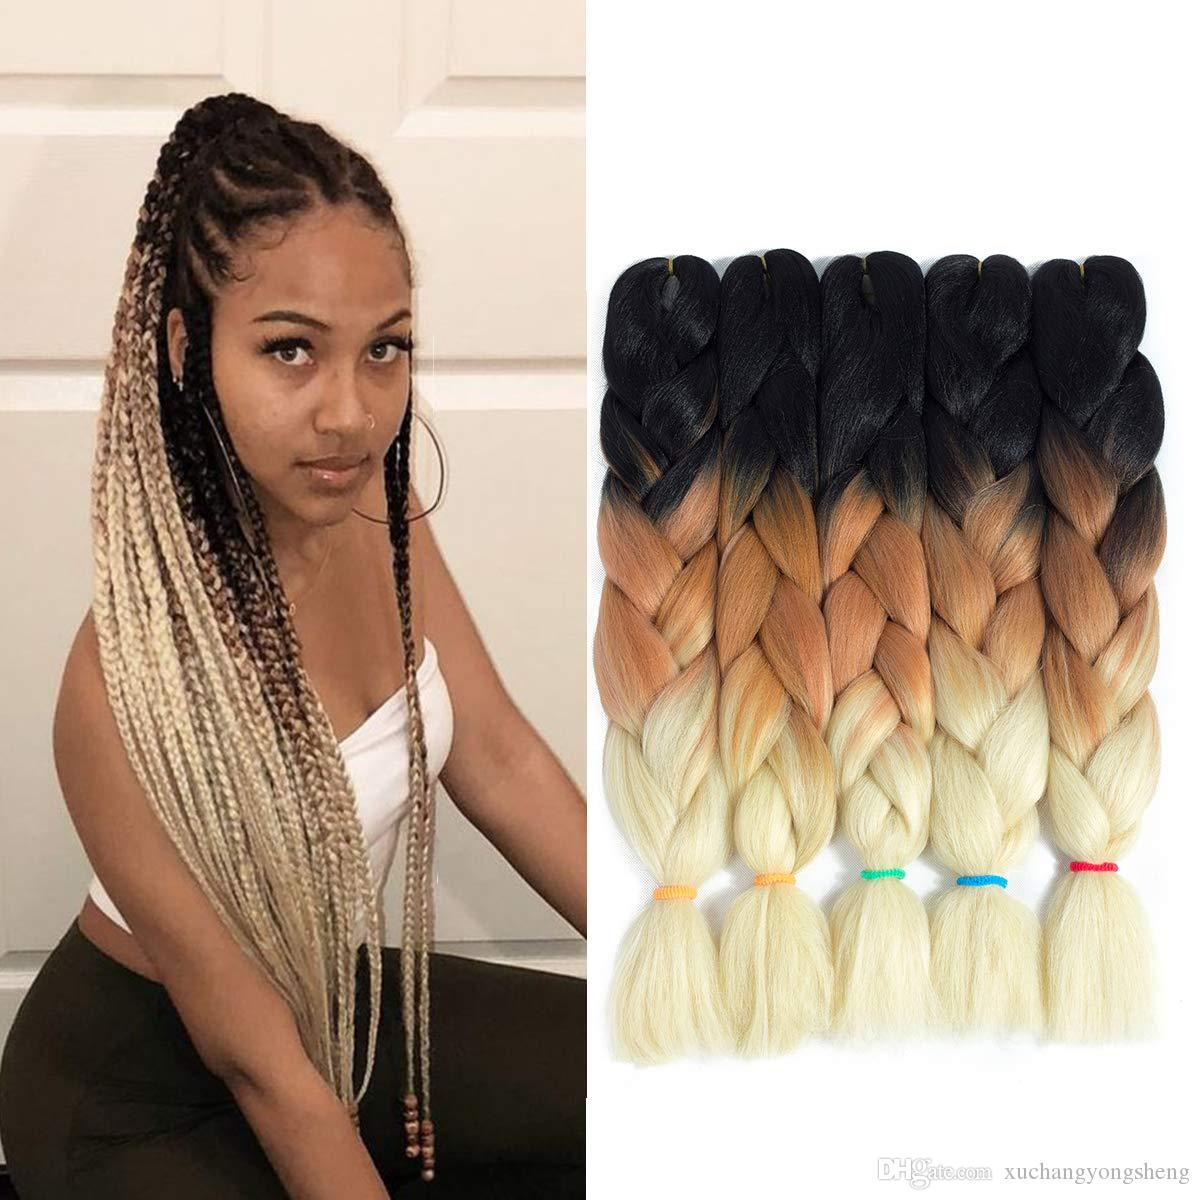 24Inch 100g/Pack Kanekalon Jumbo Box Braiding Hair Extensions Ombre Kanekalon Jumbo Crochet Box Braids Hair